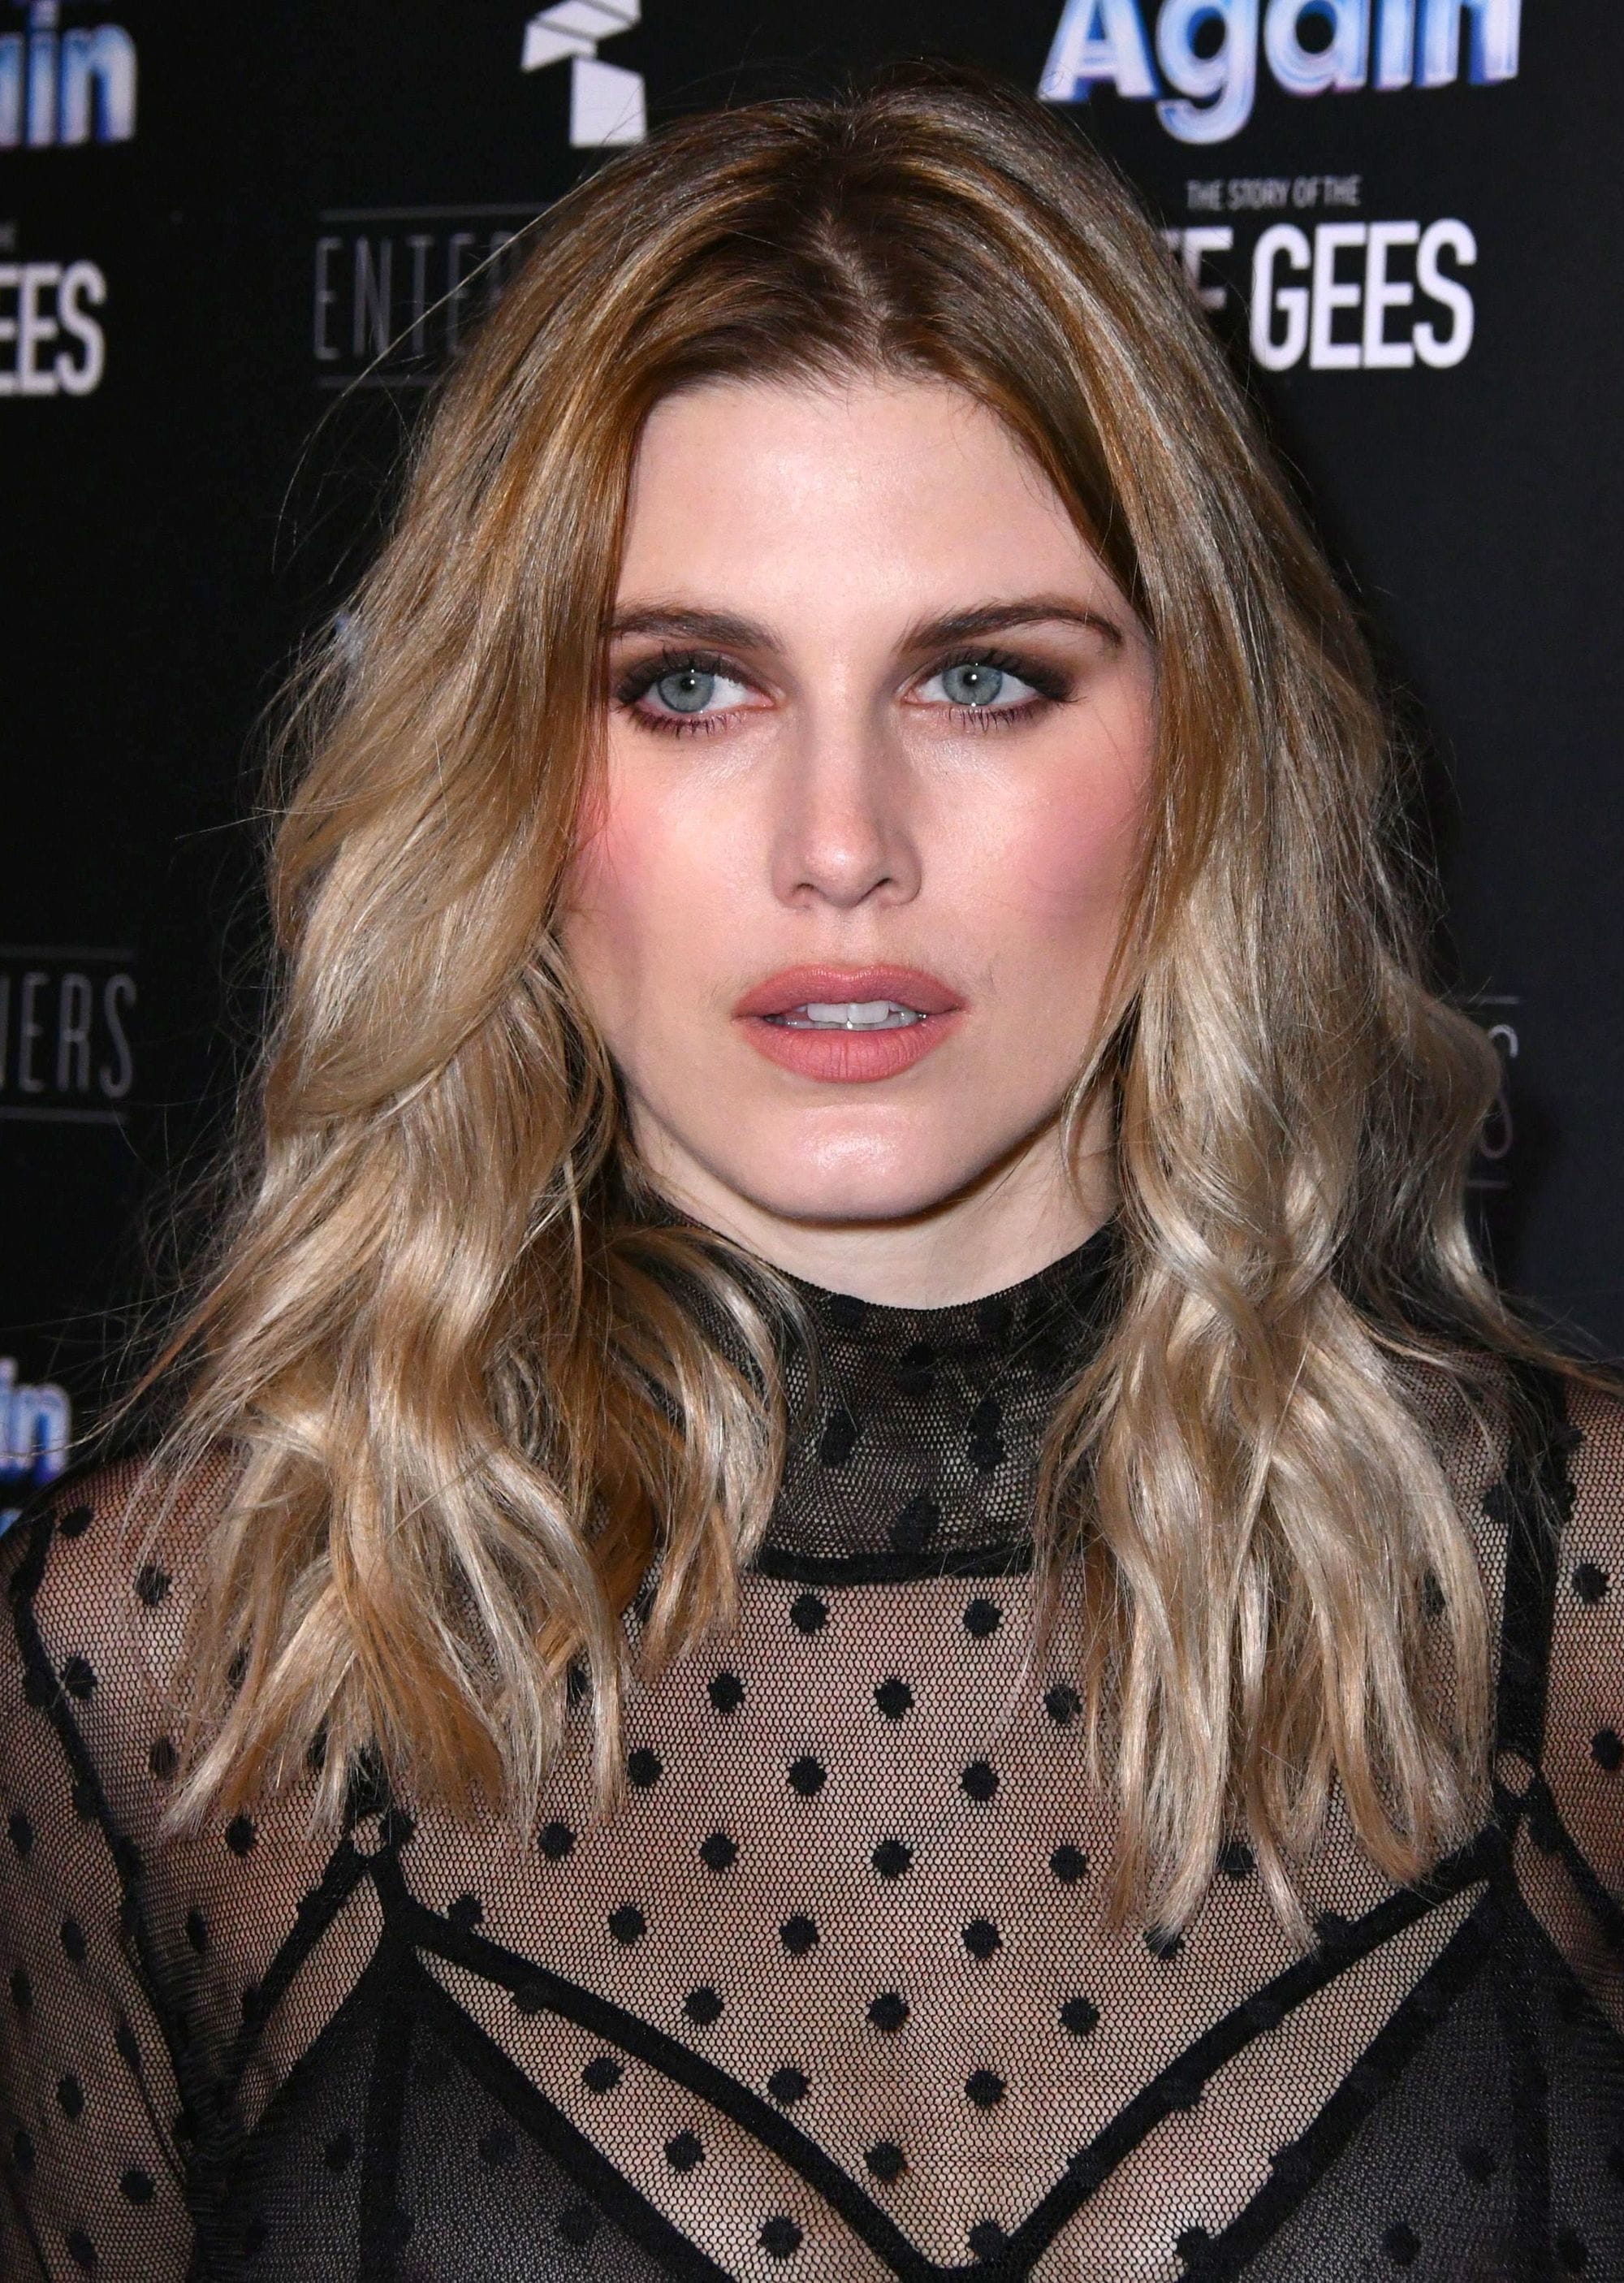 Ashley James dengan rambut beach wavs sebahu pirang.